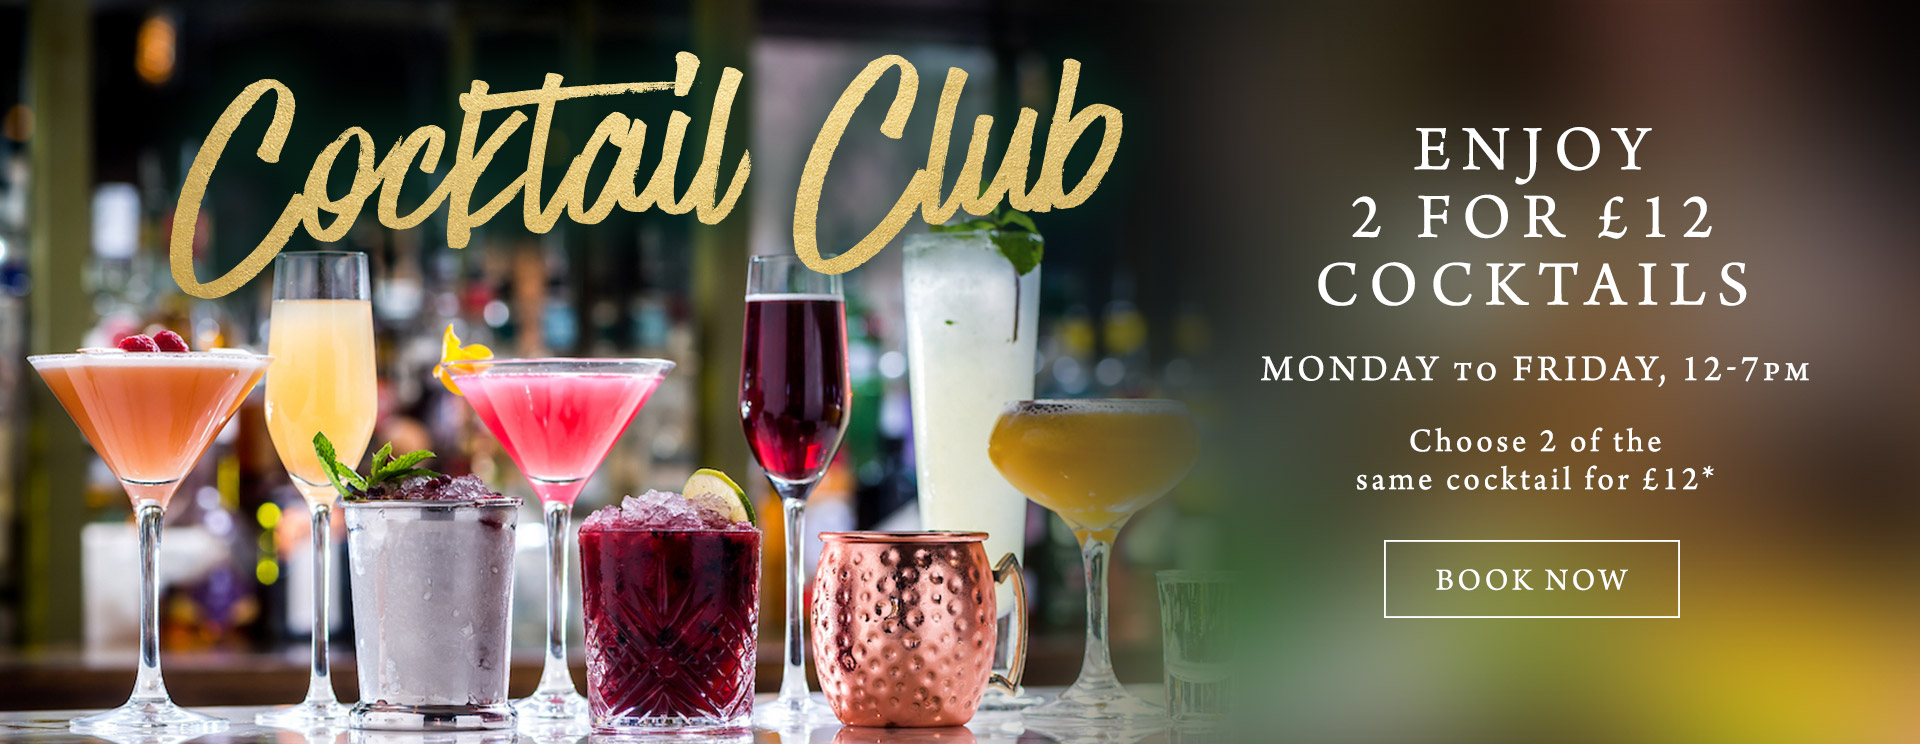 2 for £12 cocktails at The White Hart